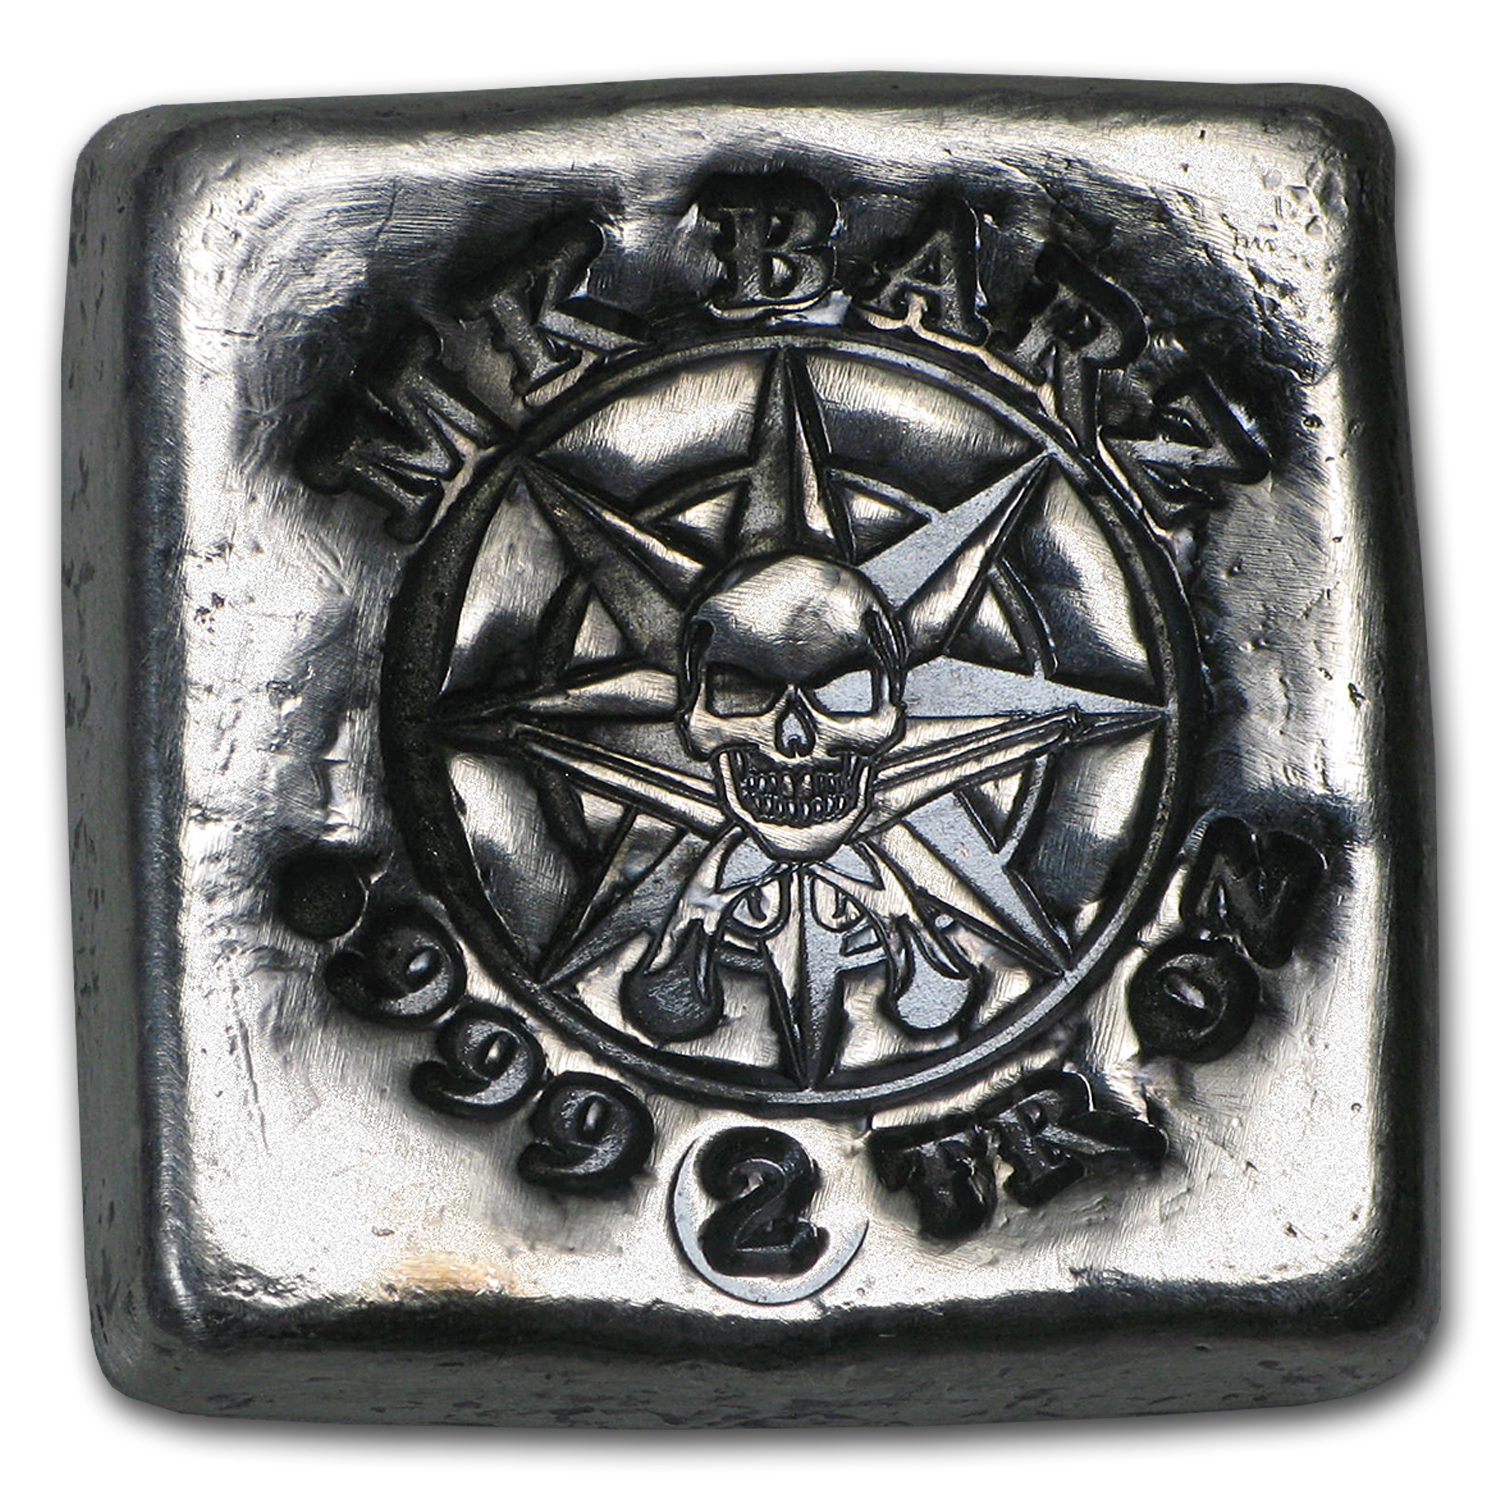 2 oz Silver Square - MK Barz & Bullion (Pirate Compass)